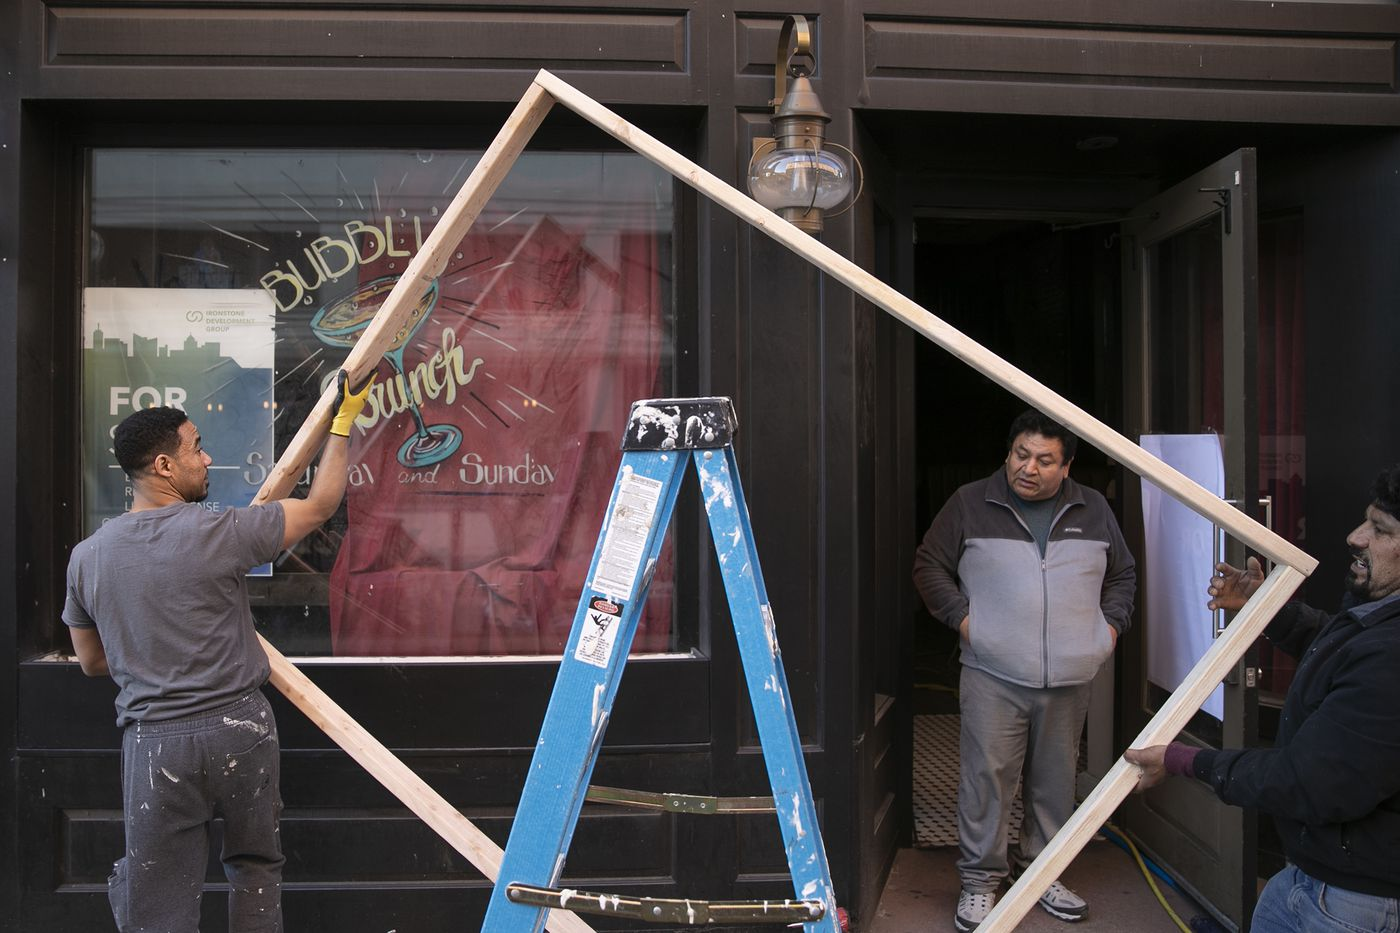 """Eduardo Saldana (center) of Philadelphia Custom Builders watches as his team boards up the popular Tinsel bar in Center City on Saturday. Gov. Tom Wolf called for the closure of all businesses that are not """"life-sustaining,"""" due to the spread of the coronavirus. Restaurants are now takeout or delivery only."""